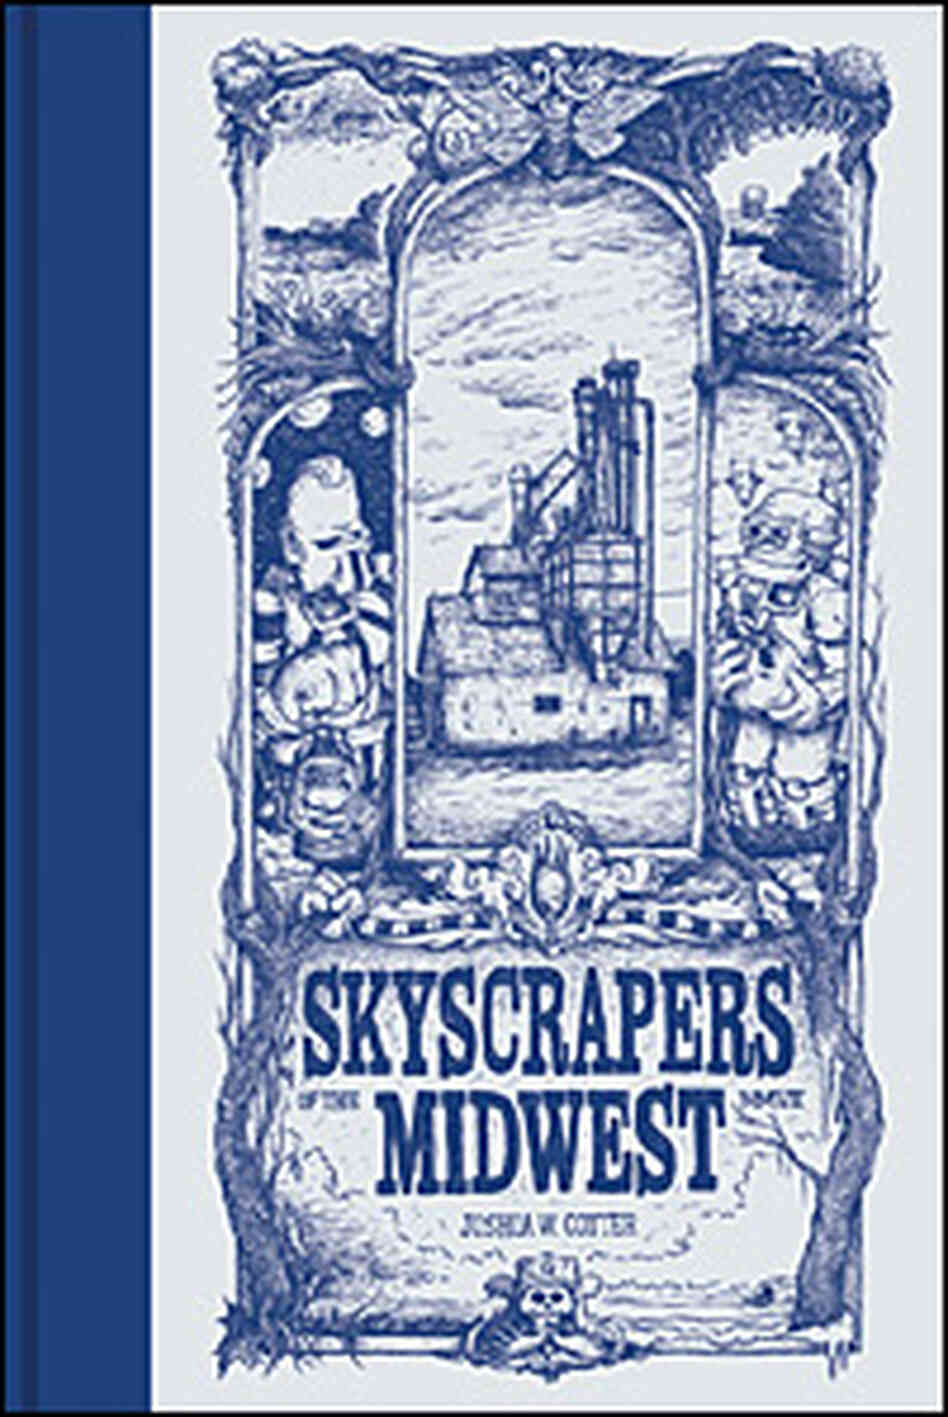 Joshua W. Cotter's 'Skyscrapers of the Midwest'